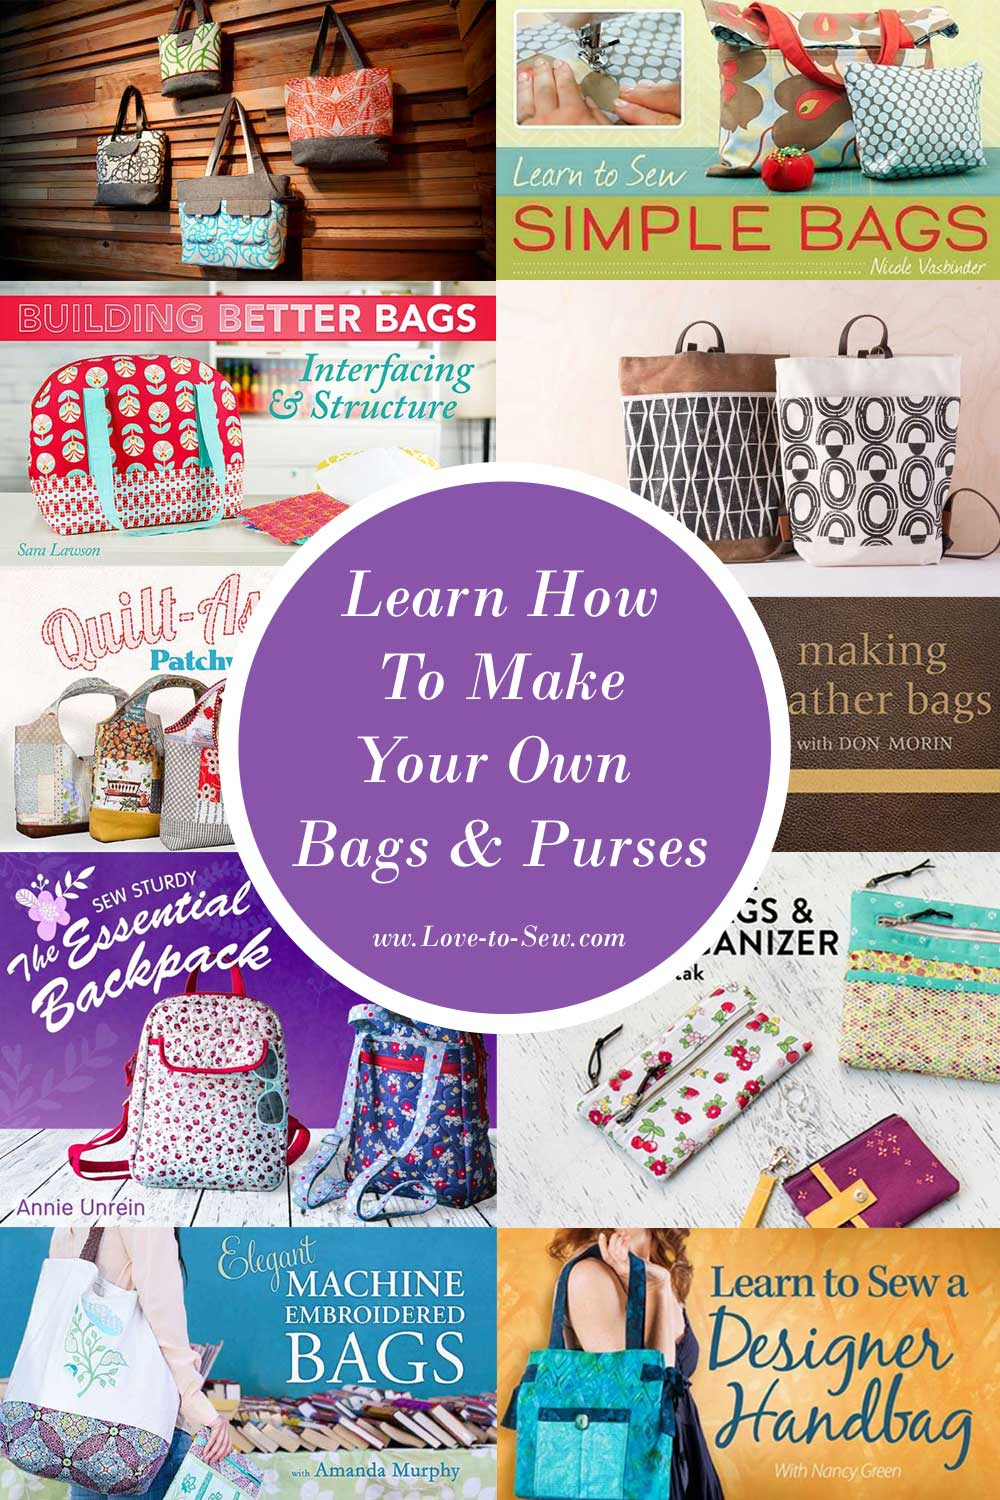 Learn How to Make Your Own Bags and Purses with these Online Classes